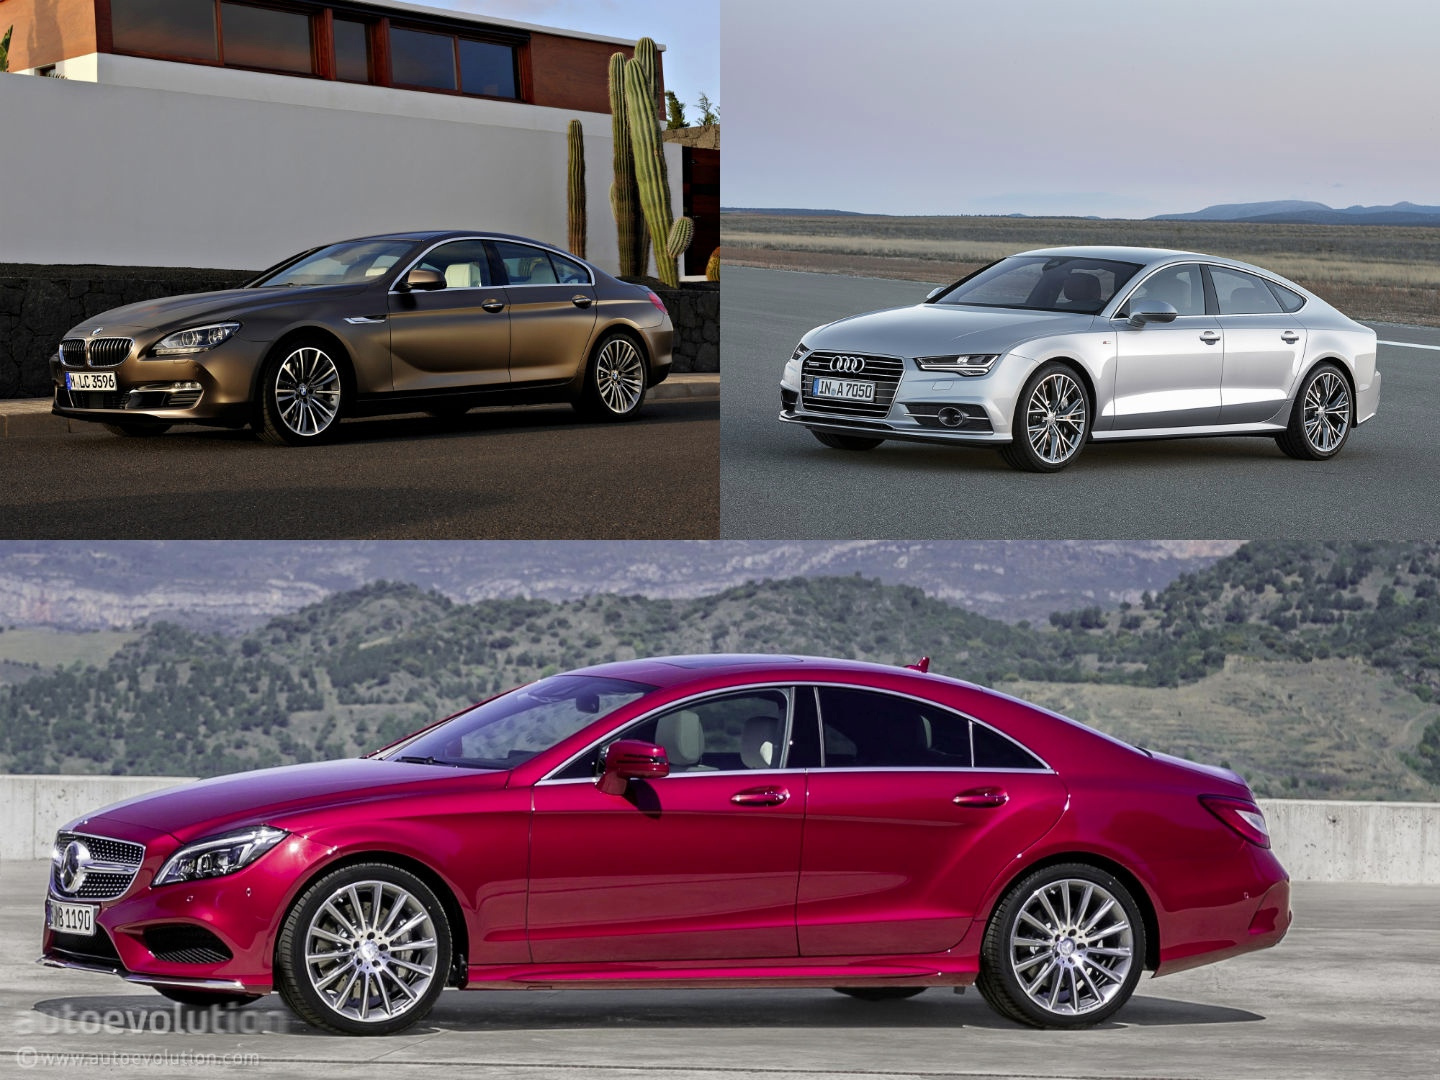 Mercedes benz cls vs audi a7 vs bmw 6 gran coupe design for Mercedes benz s series